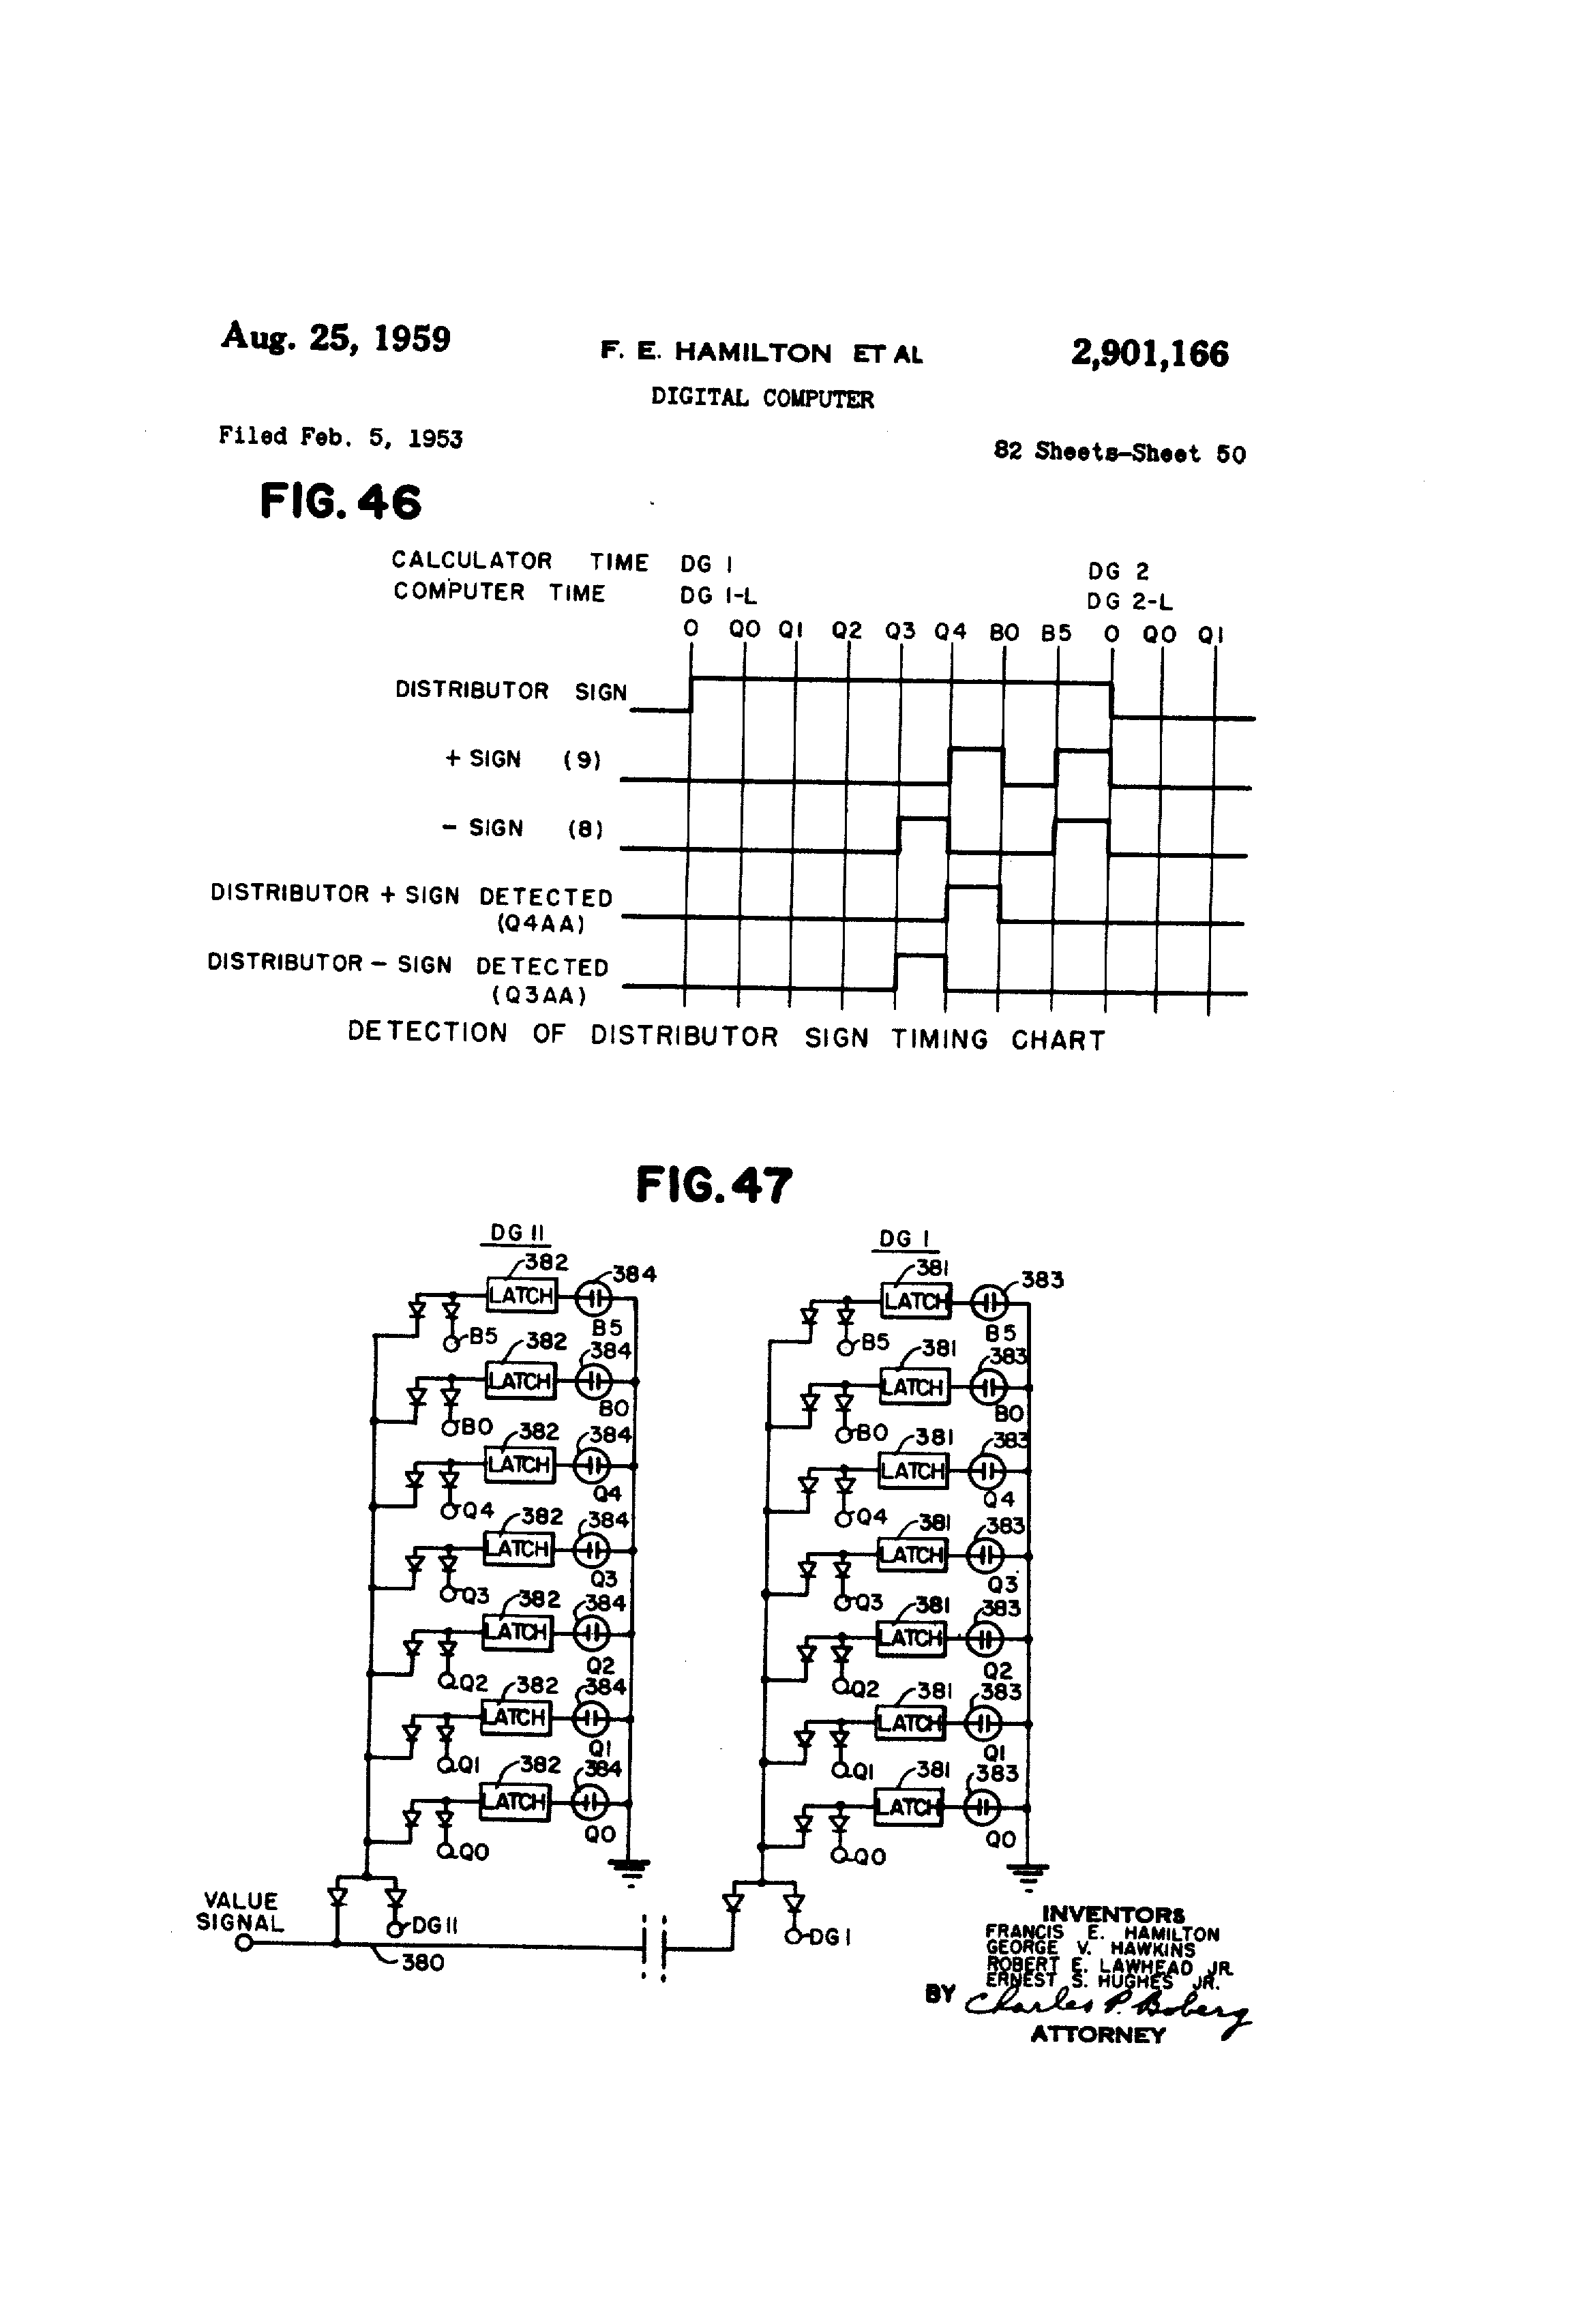 patent us2901166 - digital computer